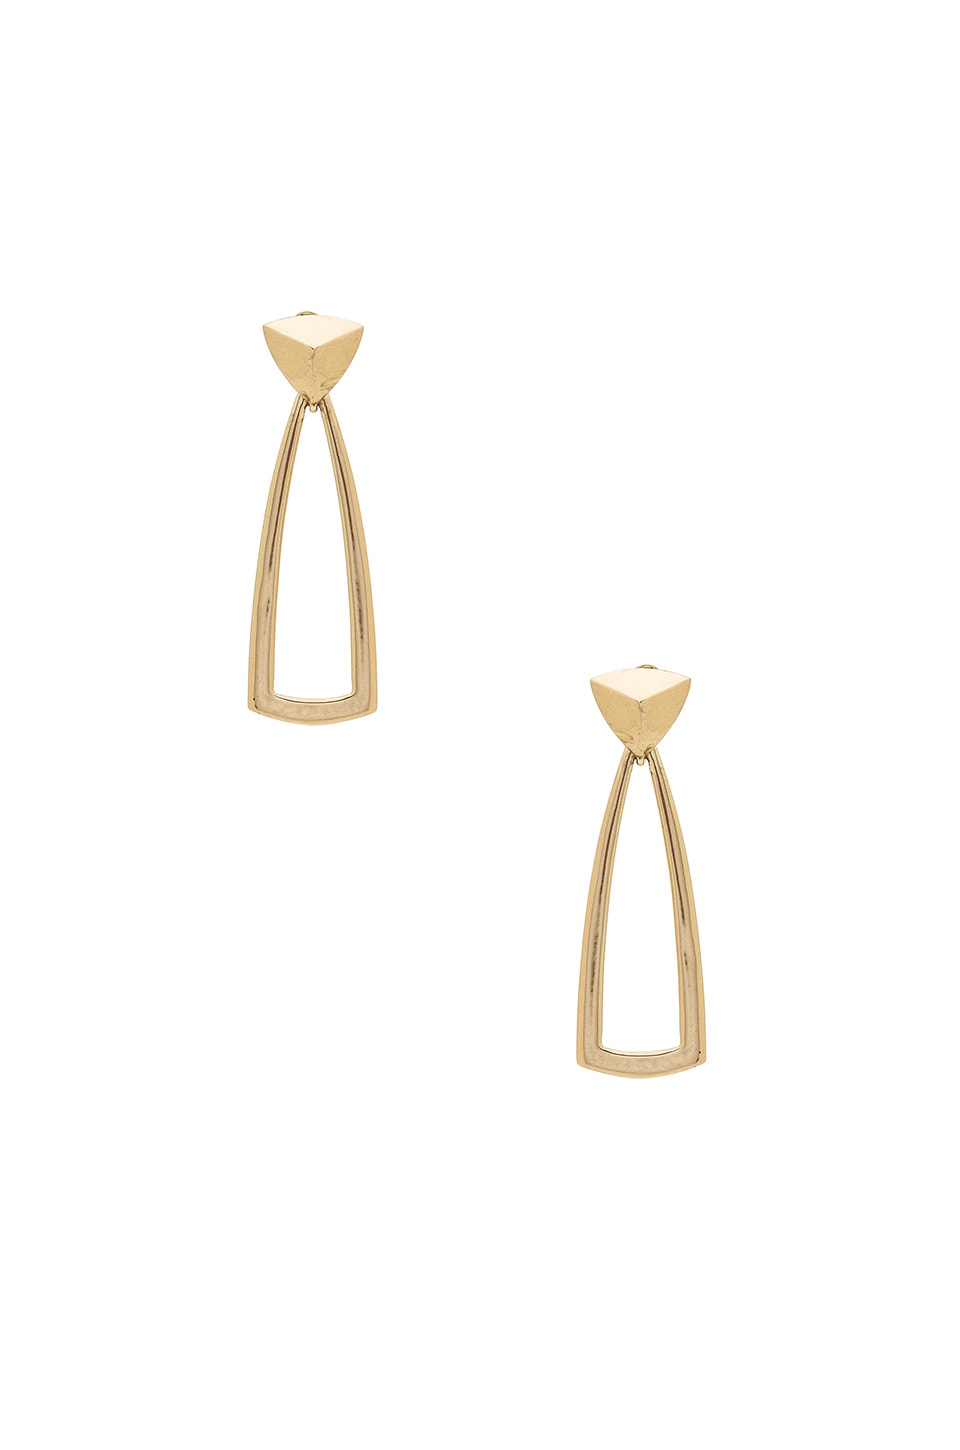 House of Harlow 1960 Mesa Door Knocker Earrings in Gold